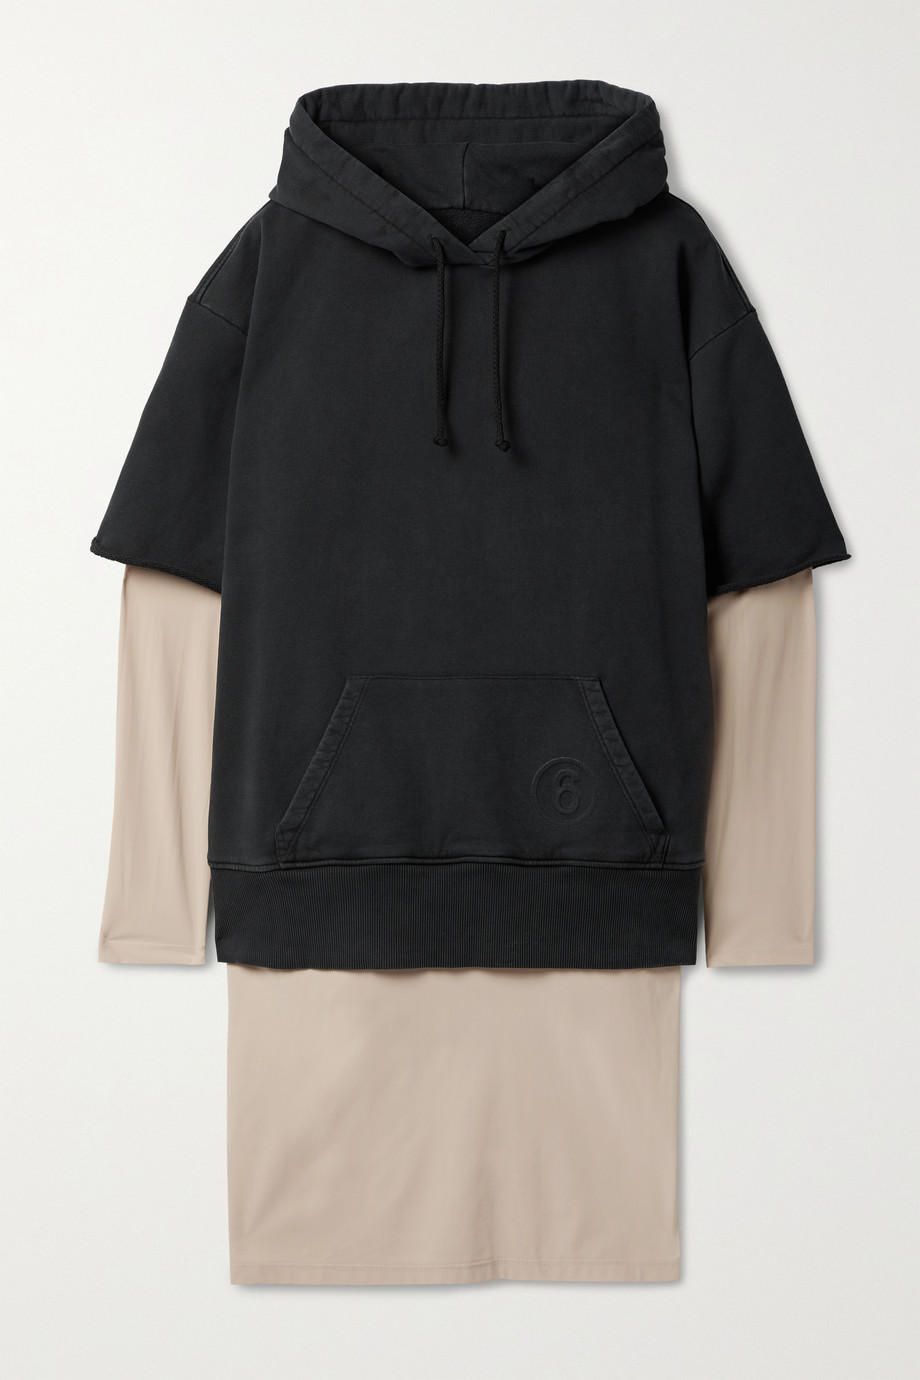 MM6 Maison Margiela Hooded layered cotton and stretch-jersey dress